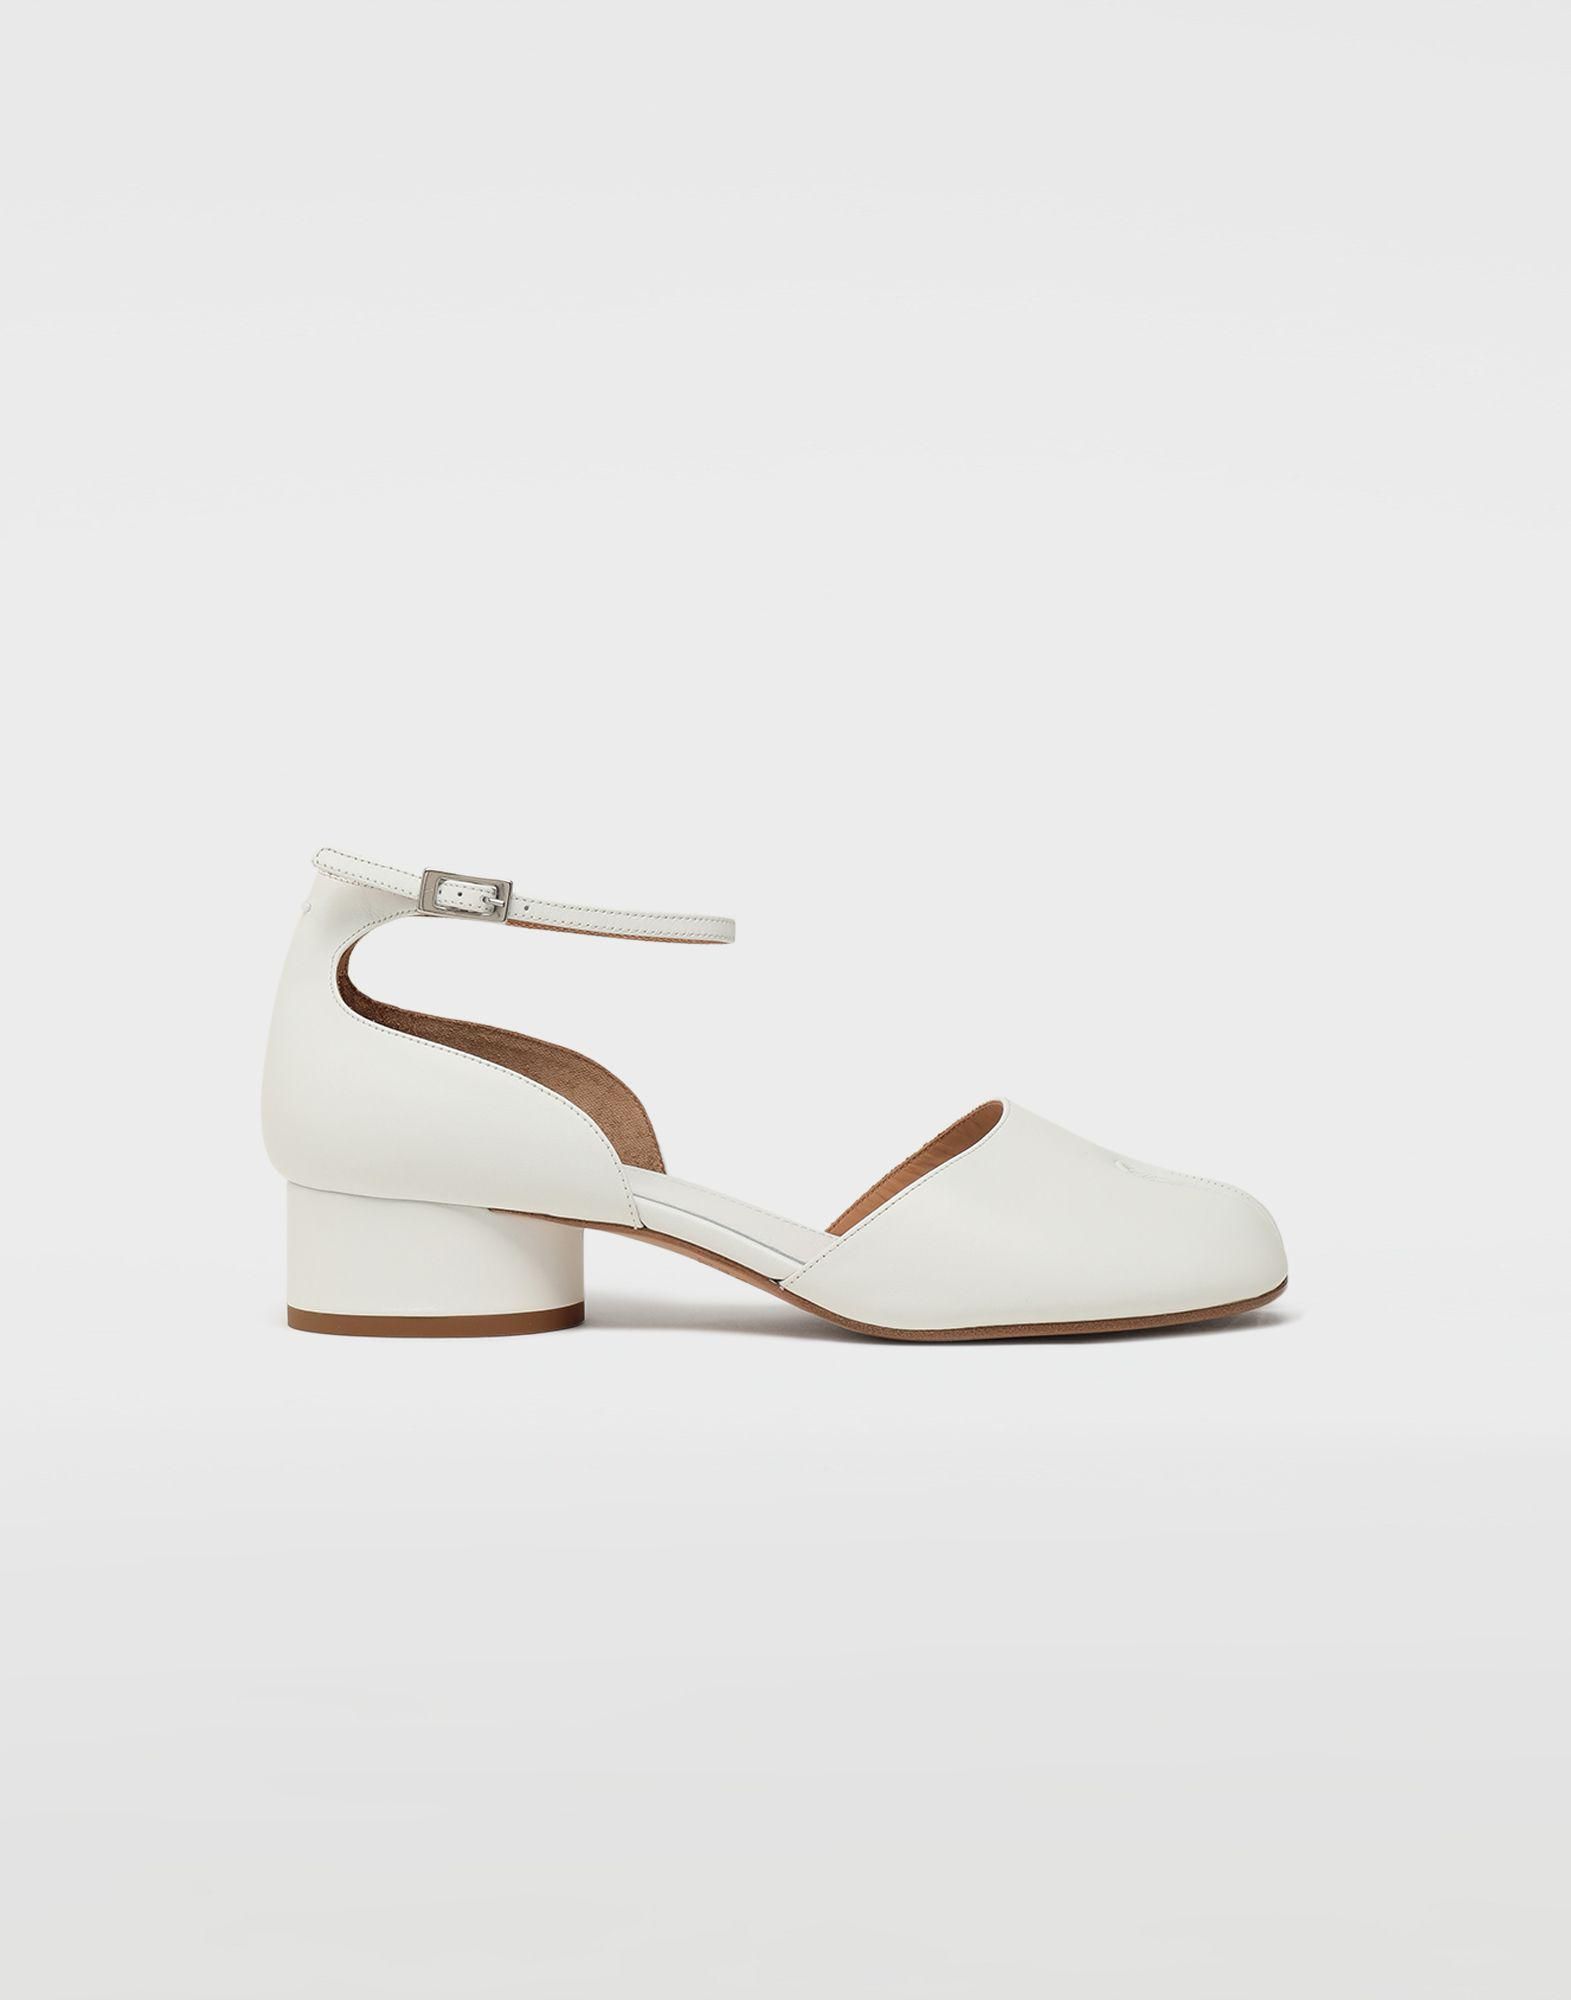 580400986fda Lyst - Maison Margiela Tabi Leather Ankle Strap Shoes in White